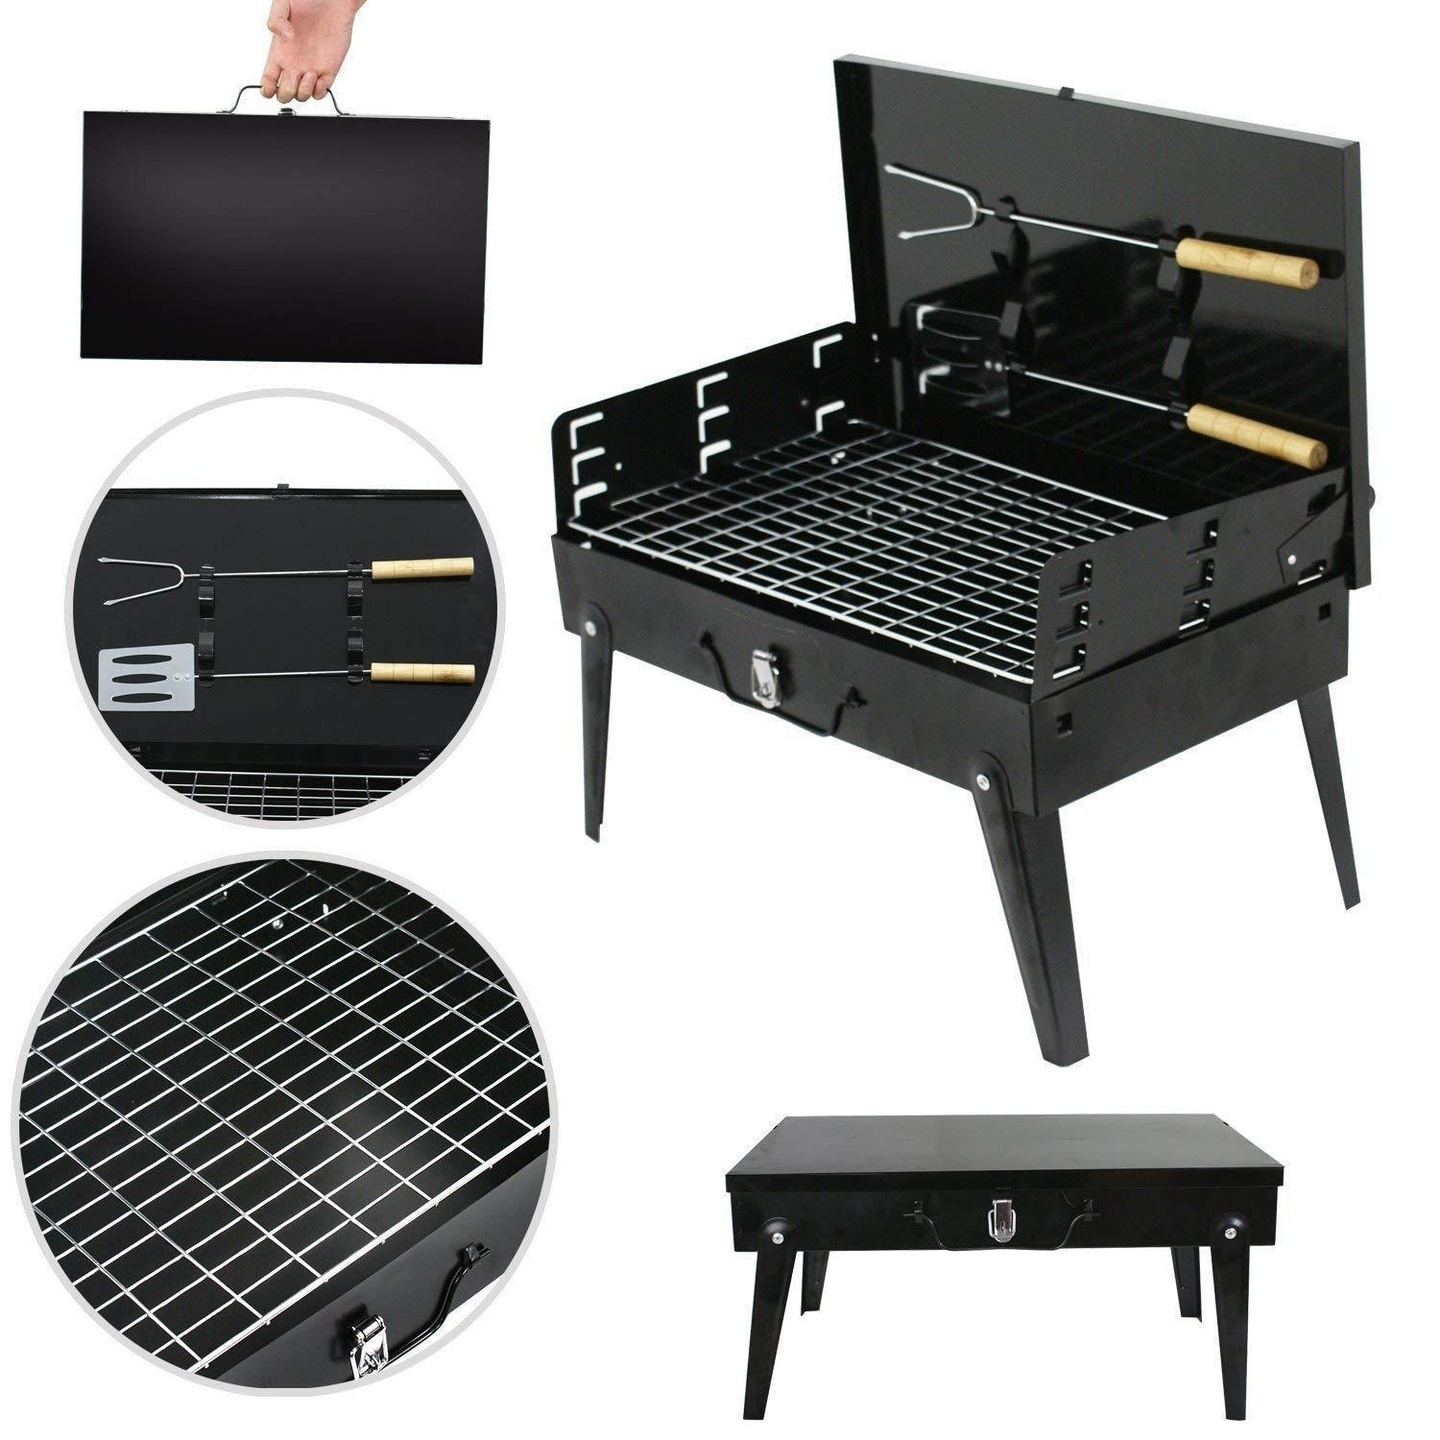 Stainless Steel Briefcase Style Barbecue Grill Toaster Medium, Black